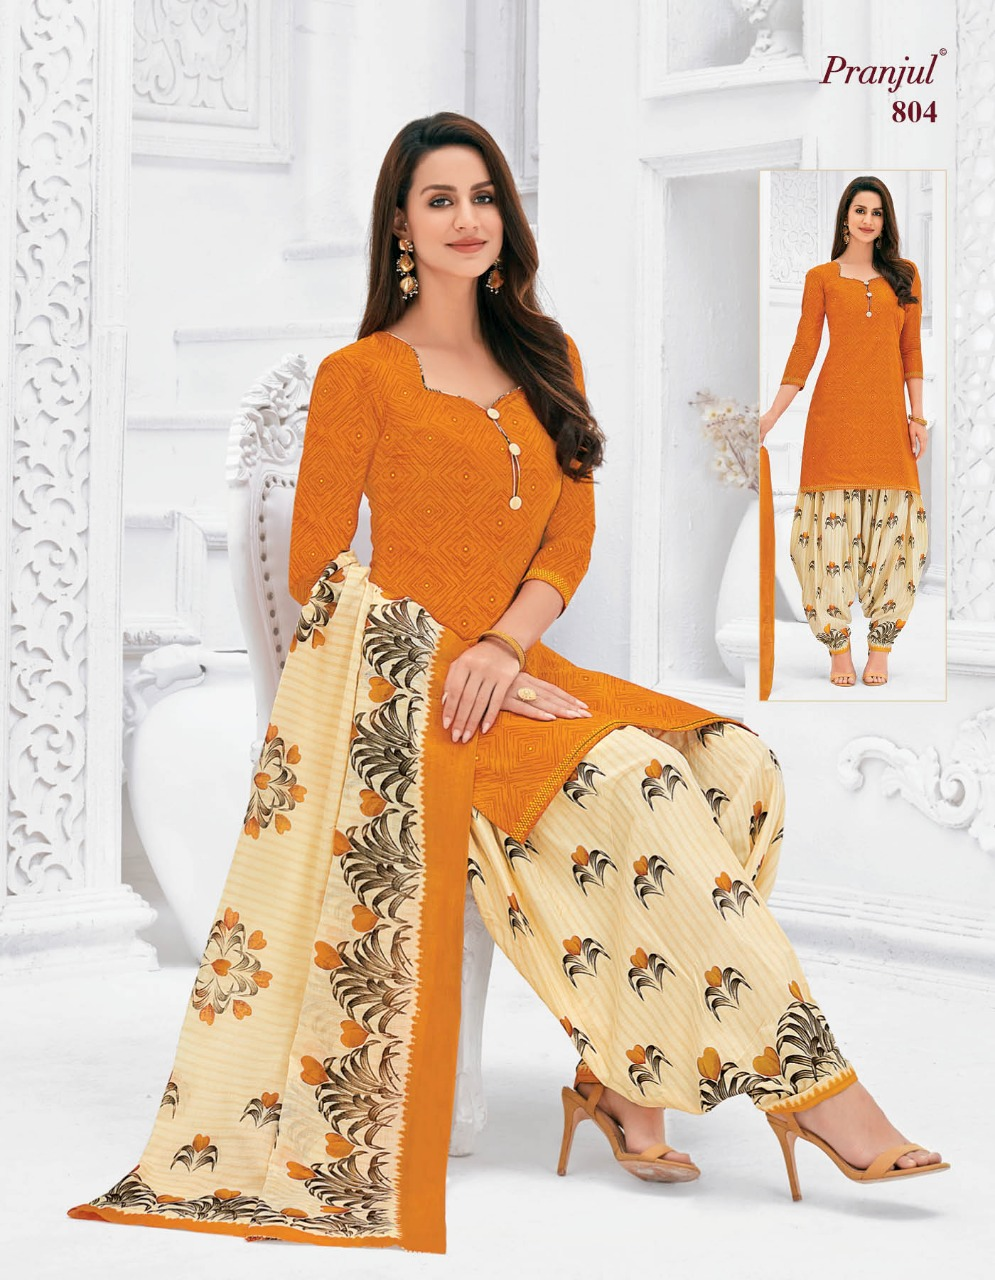 Pranjul Priyanka Vol 8 A Readymade Suit Wholesale Catalog 15 Pcs 1 - Pranjul Priyanka Vol 8 A Readymade Suit Wholesale Catalog 15 Pcs